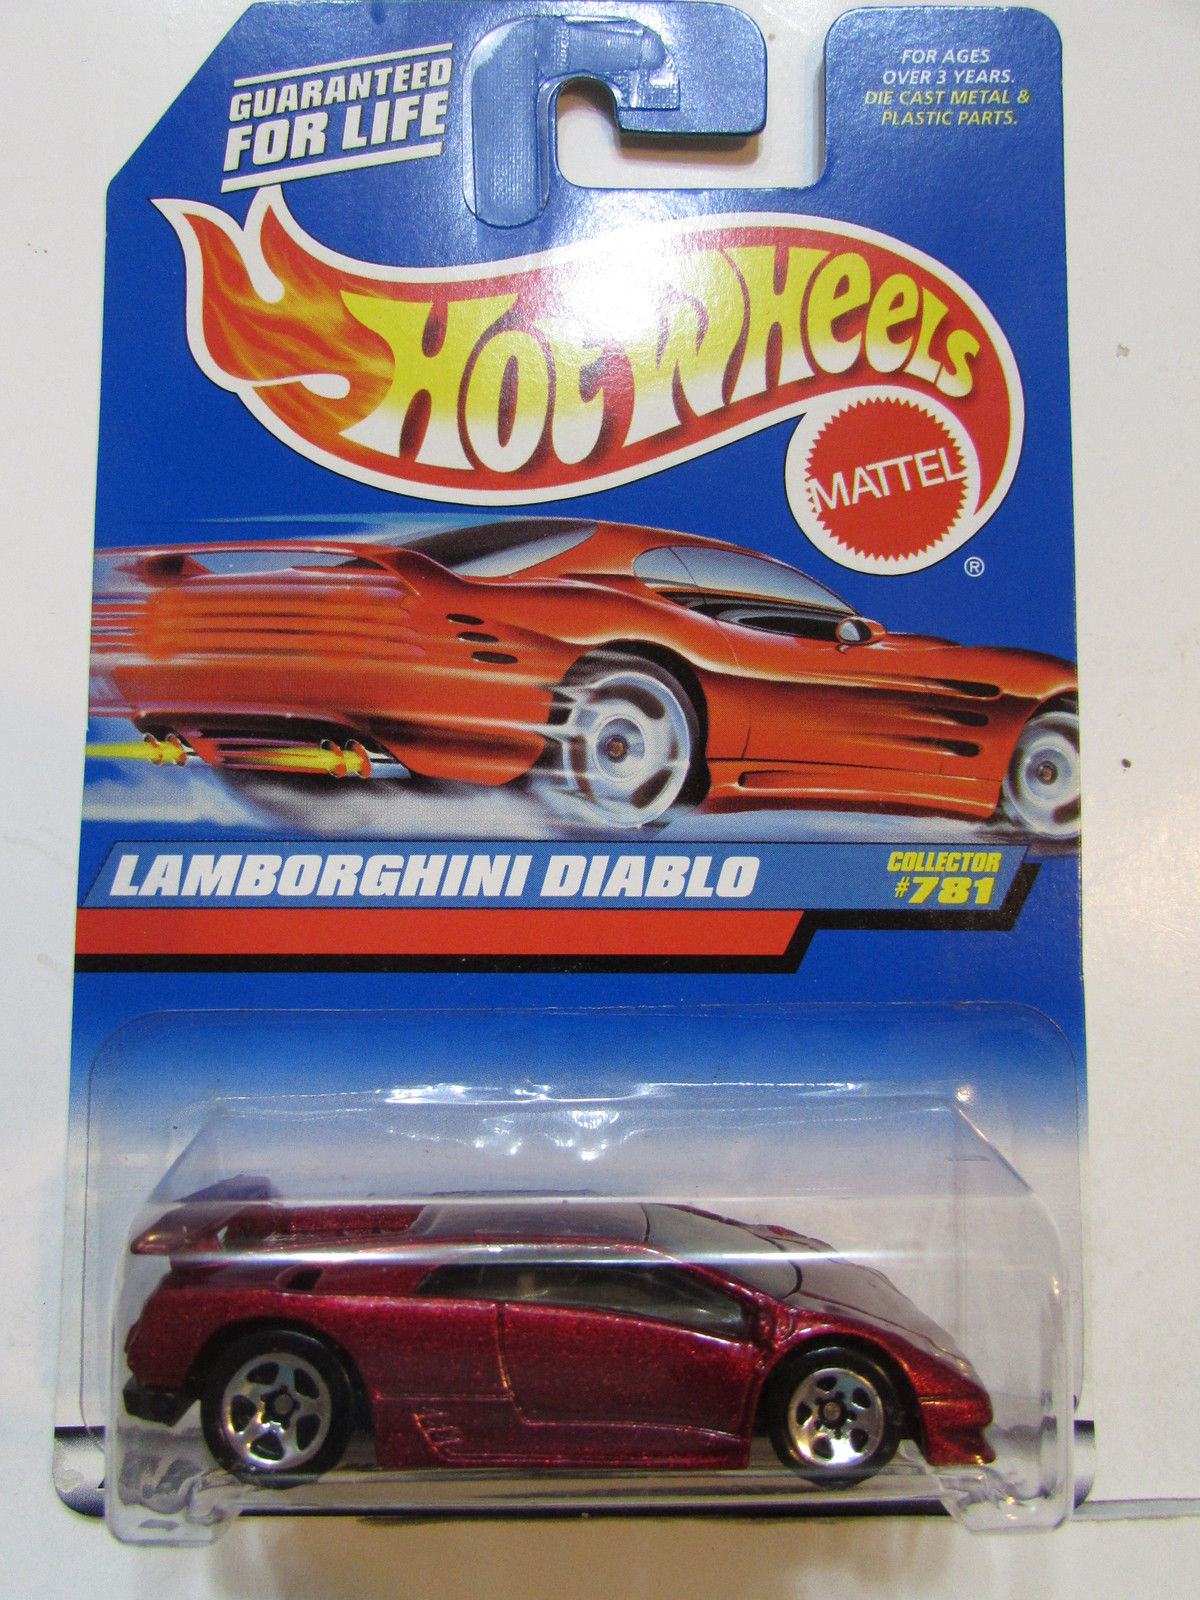 HOT WHEELS 1998 LAMBORGHINI DIABLO #781